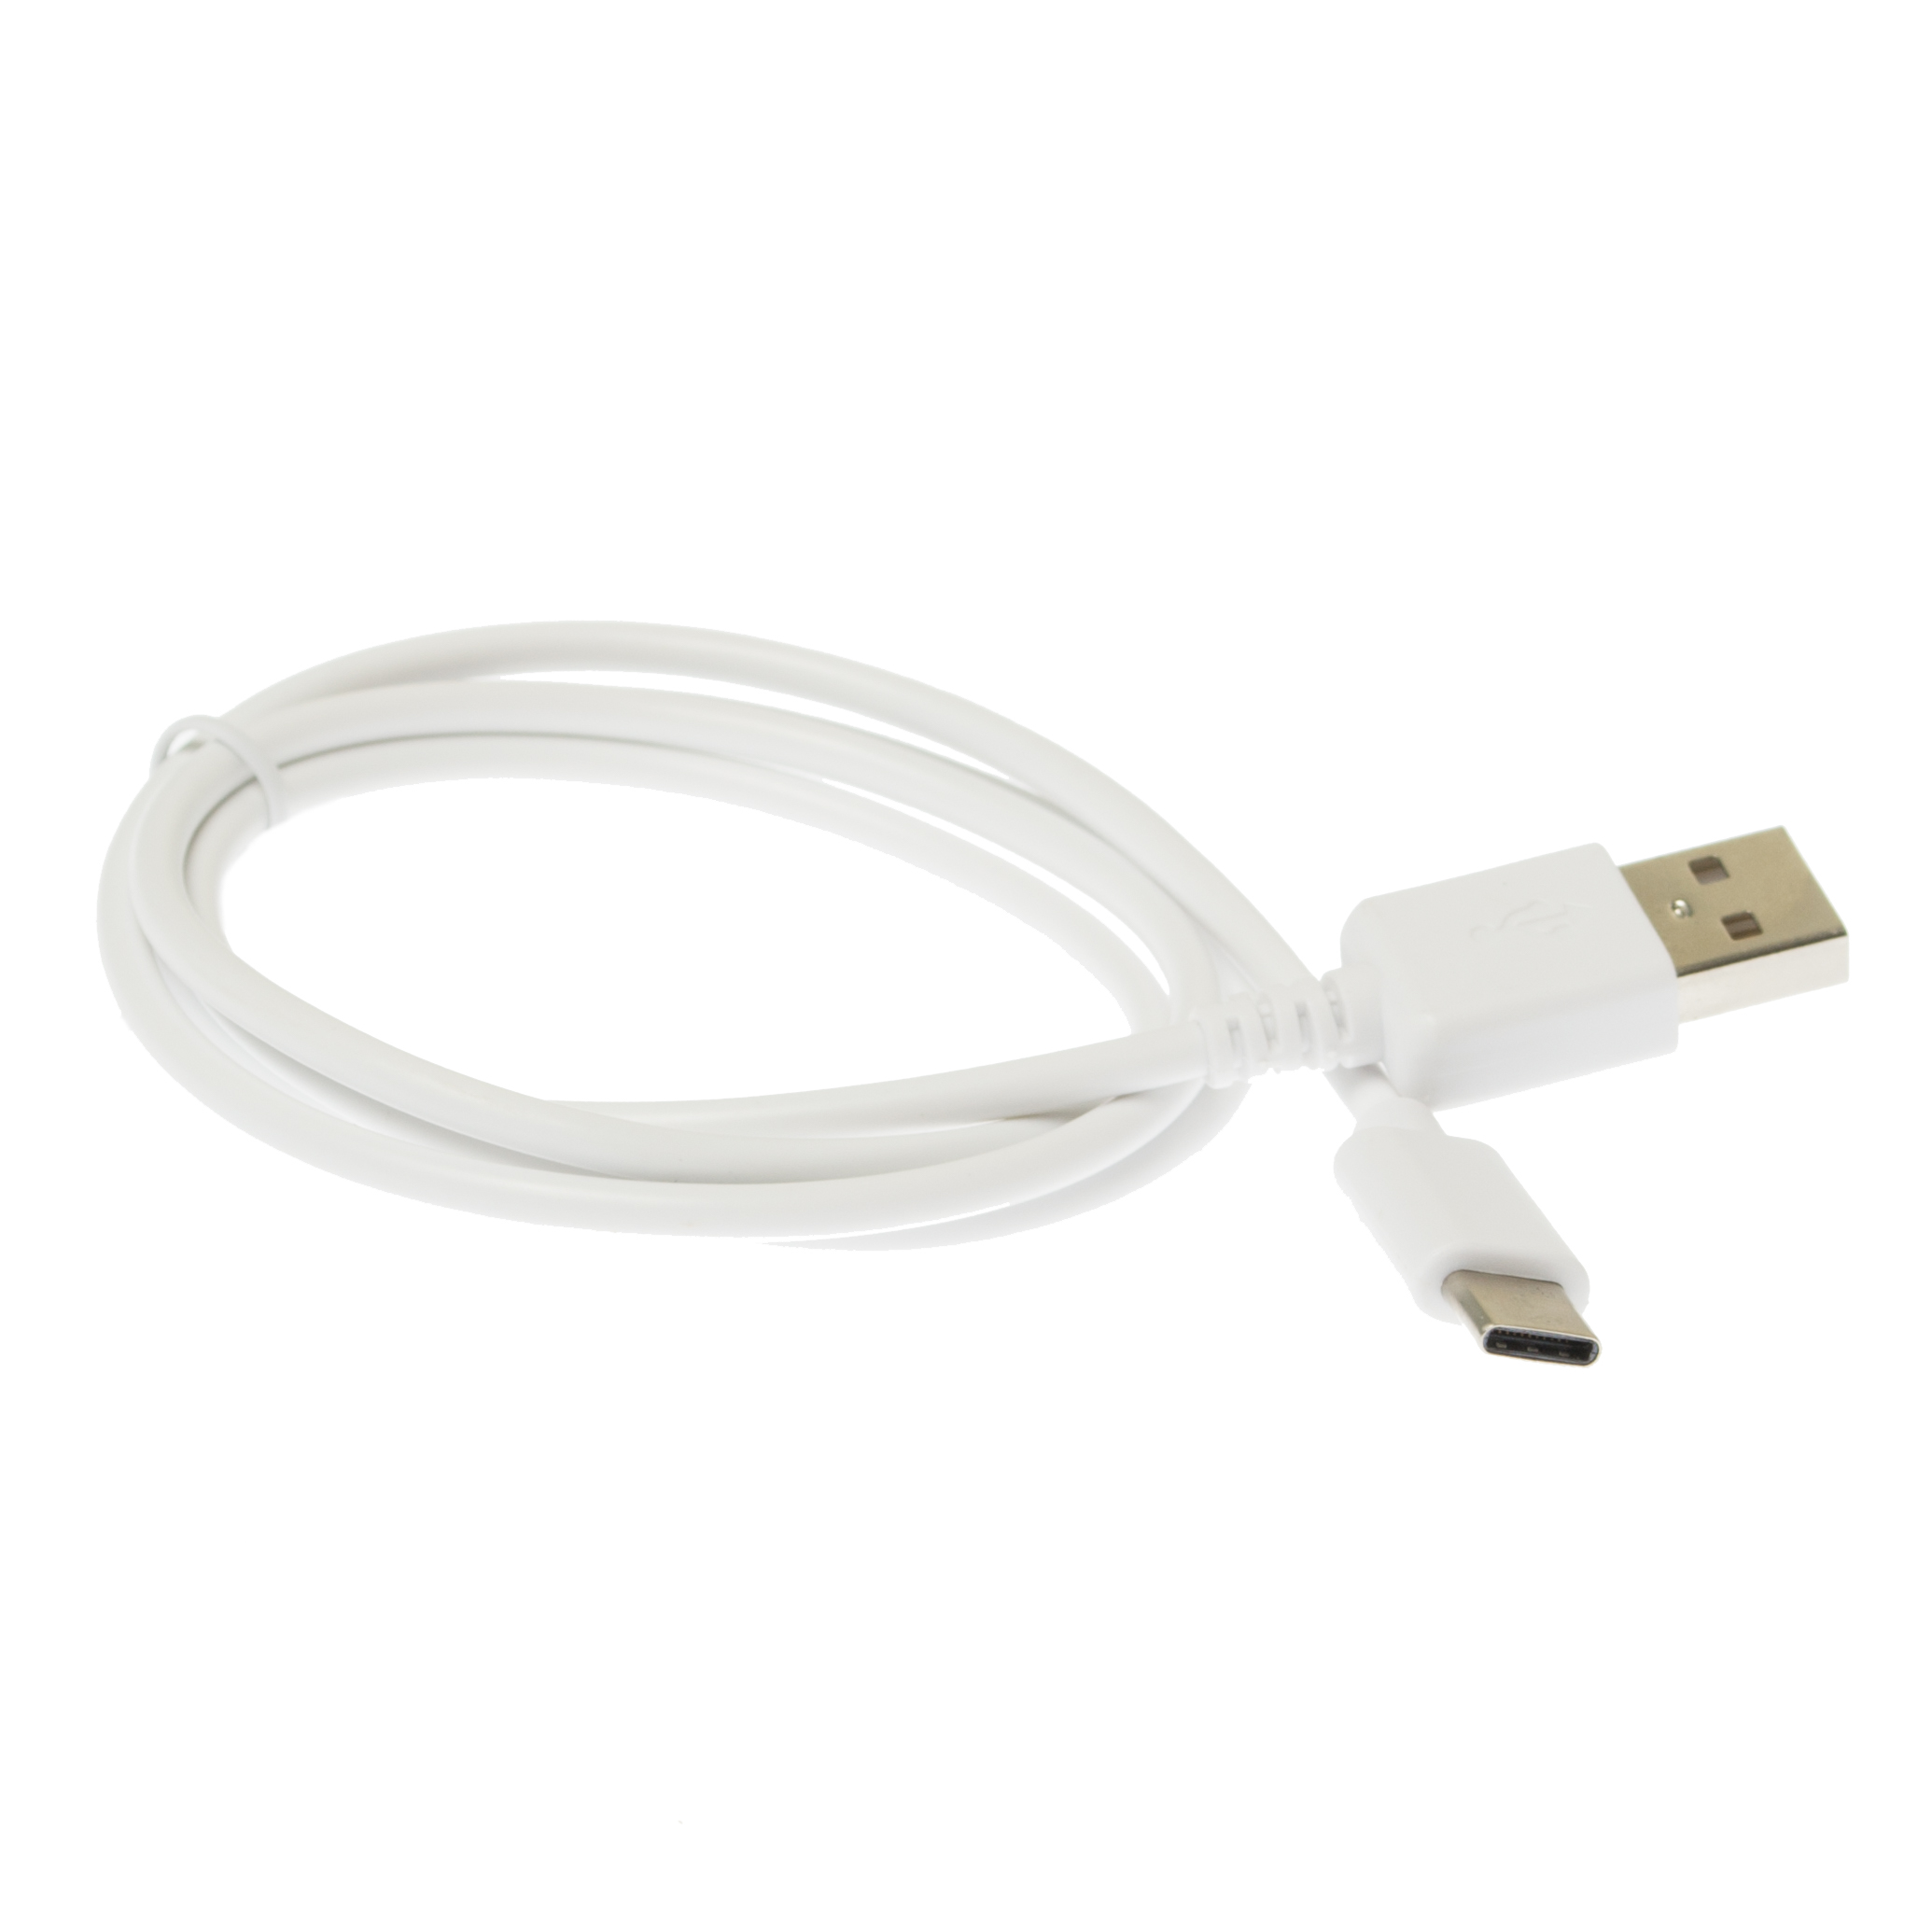 thumbnail 20 - USB Cable Compatible with Samsung Galaxy Tab S6 Lite SM-P610N, SM-P615 Tablet